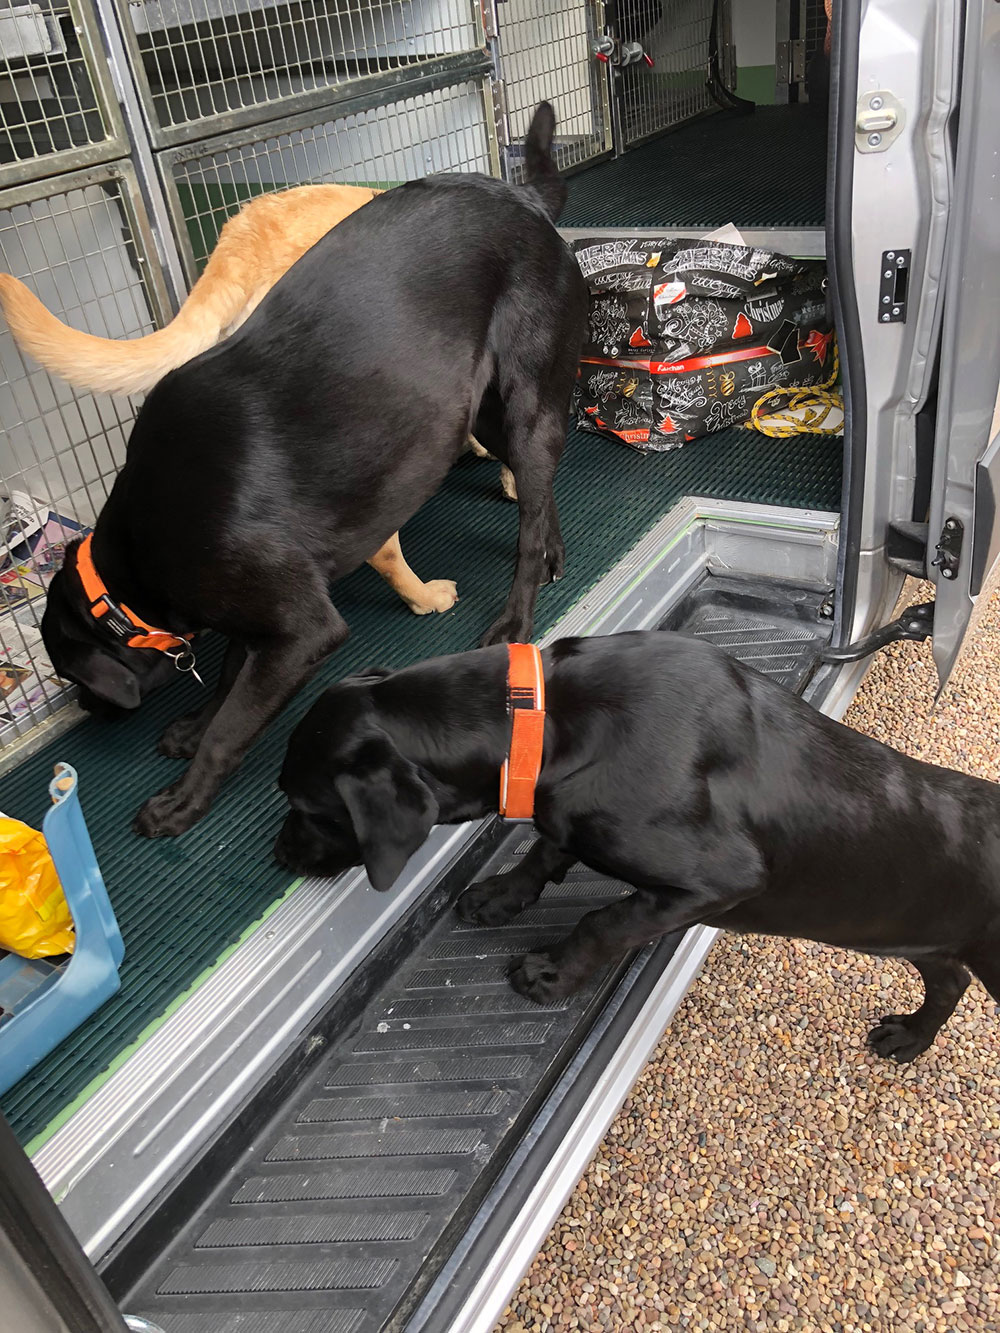 Trained gun dogs and used to travelling, these three are very well behaved. They were keen to explore our van, and quick to sniff out where the dog food is stored!